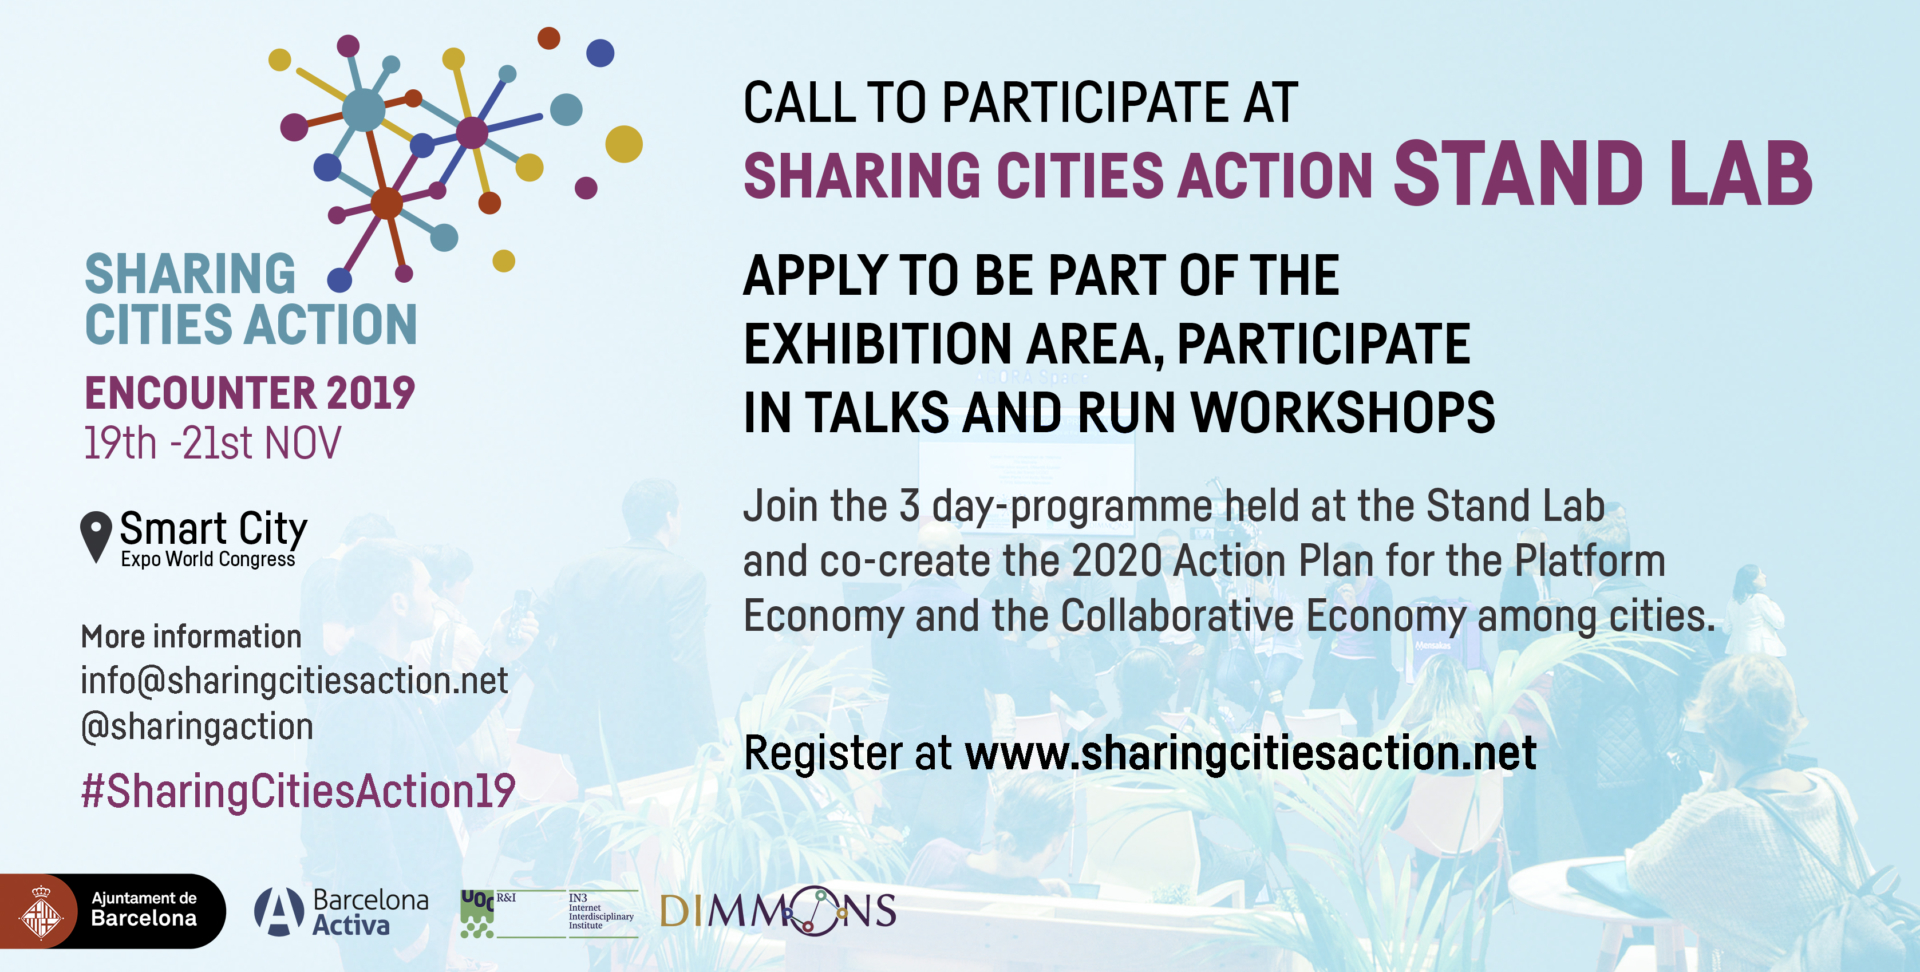 Call Sharing Cities Action